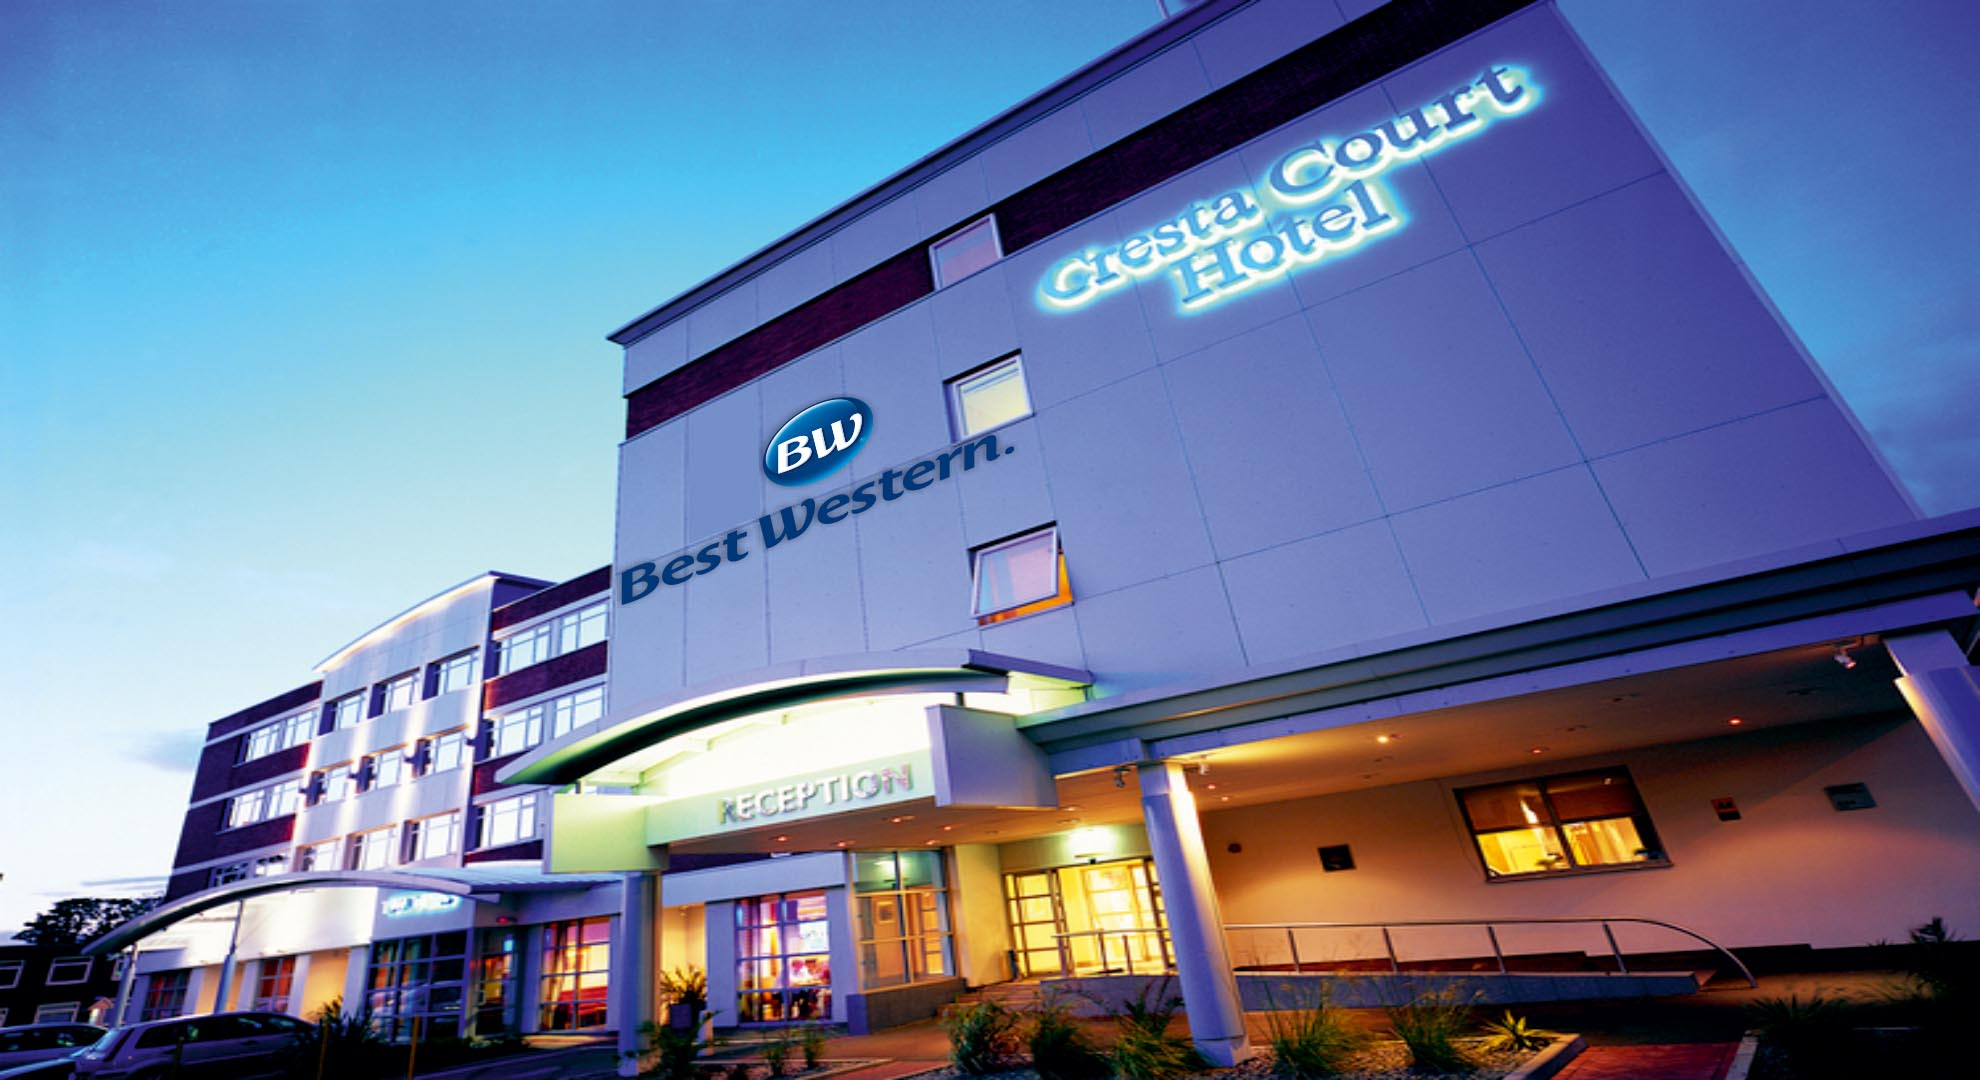 The Twilight Wedding Package - Best Western Manchester Altrincham Cresta Court Hotel Exterior image